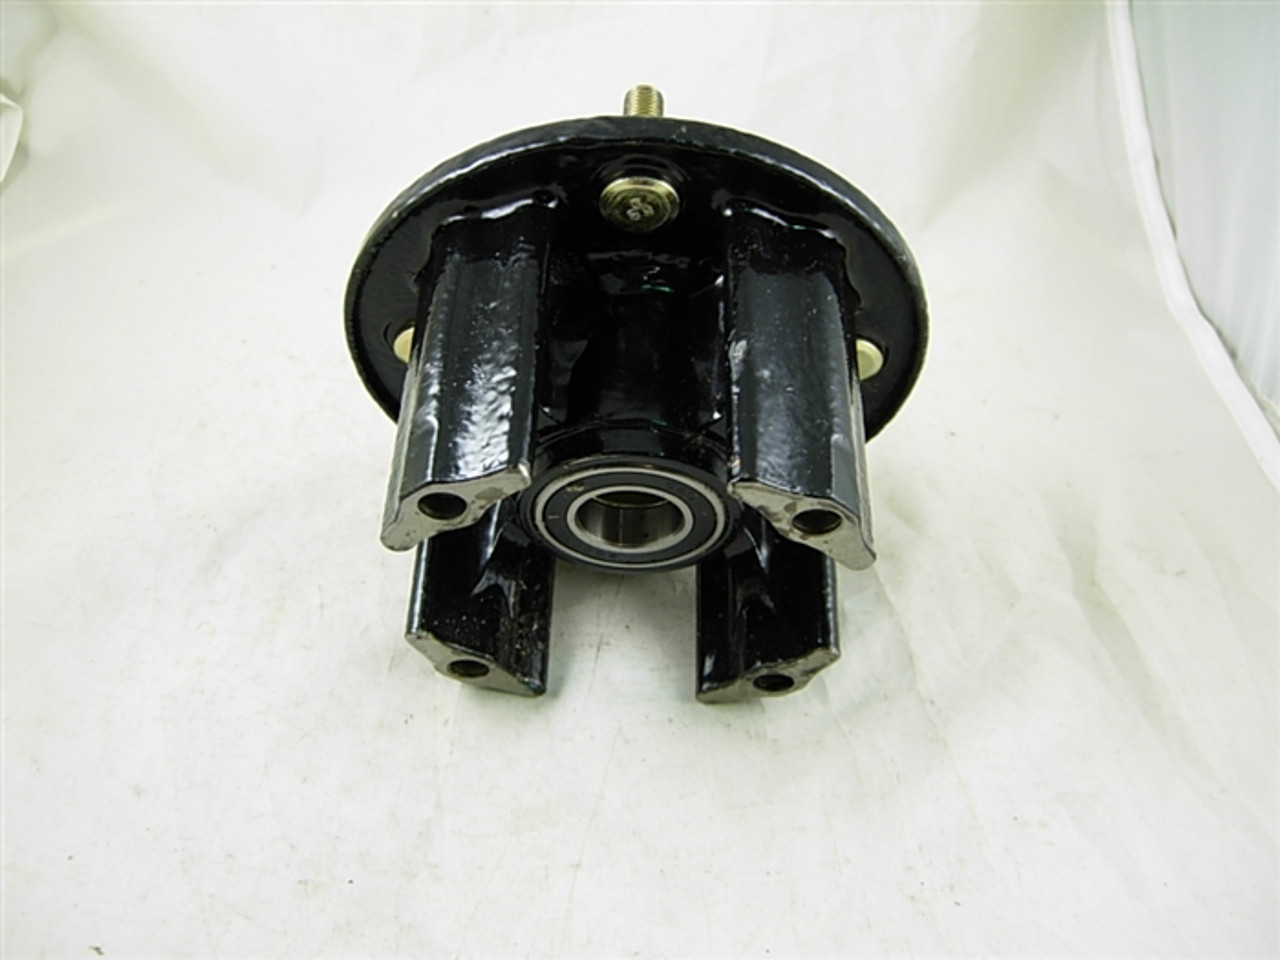 HUB AND BEARING ASSEMBLY 11650-A92-12